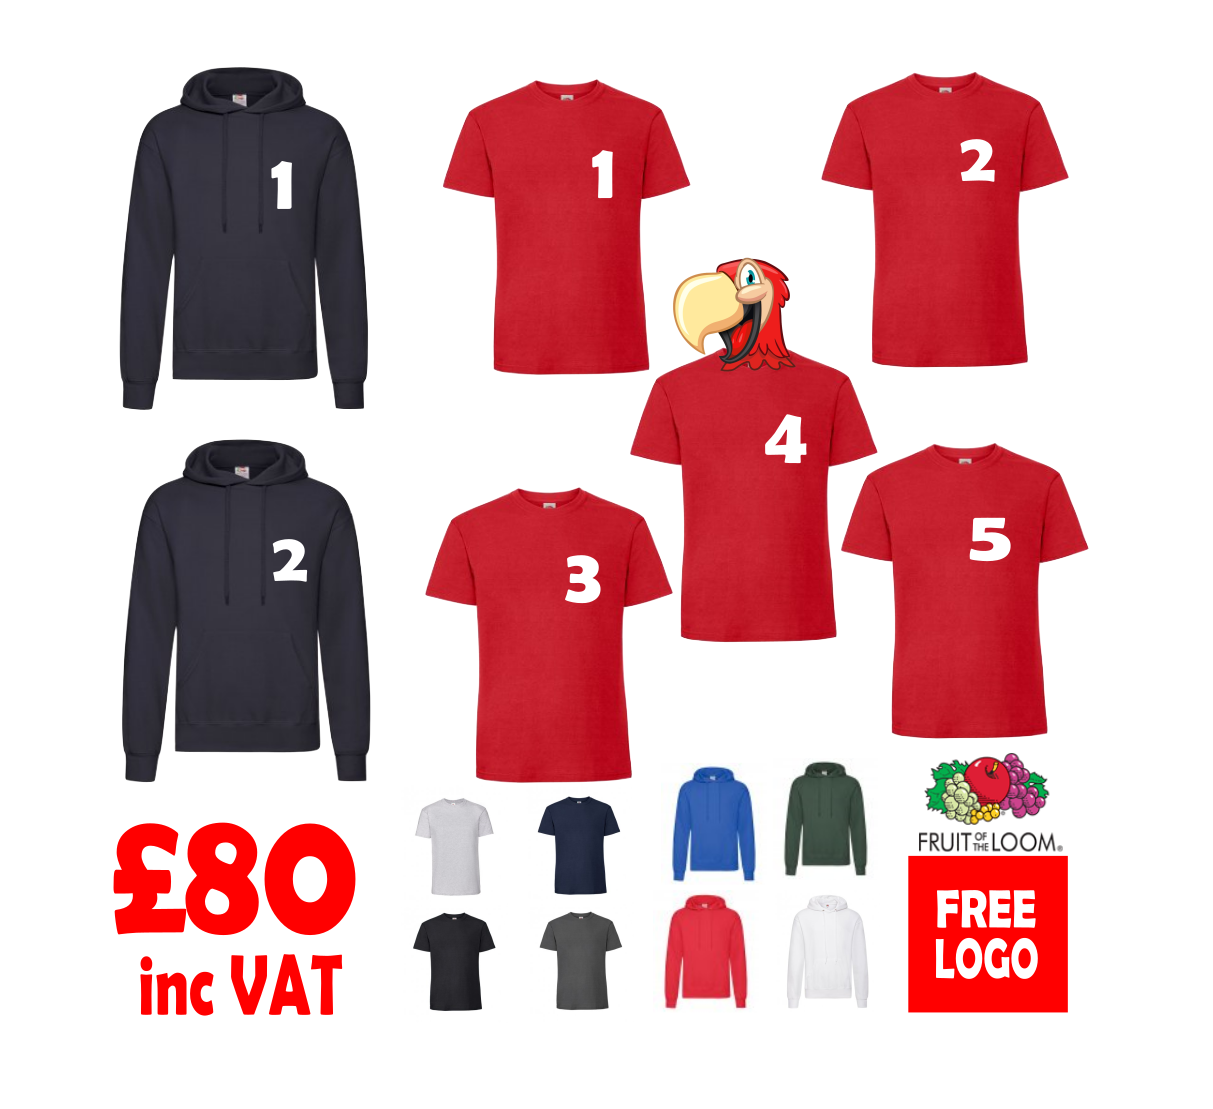 9b8a22fa3 T-Shirt & Hoodie Bundle - 7 items personalised with your logo